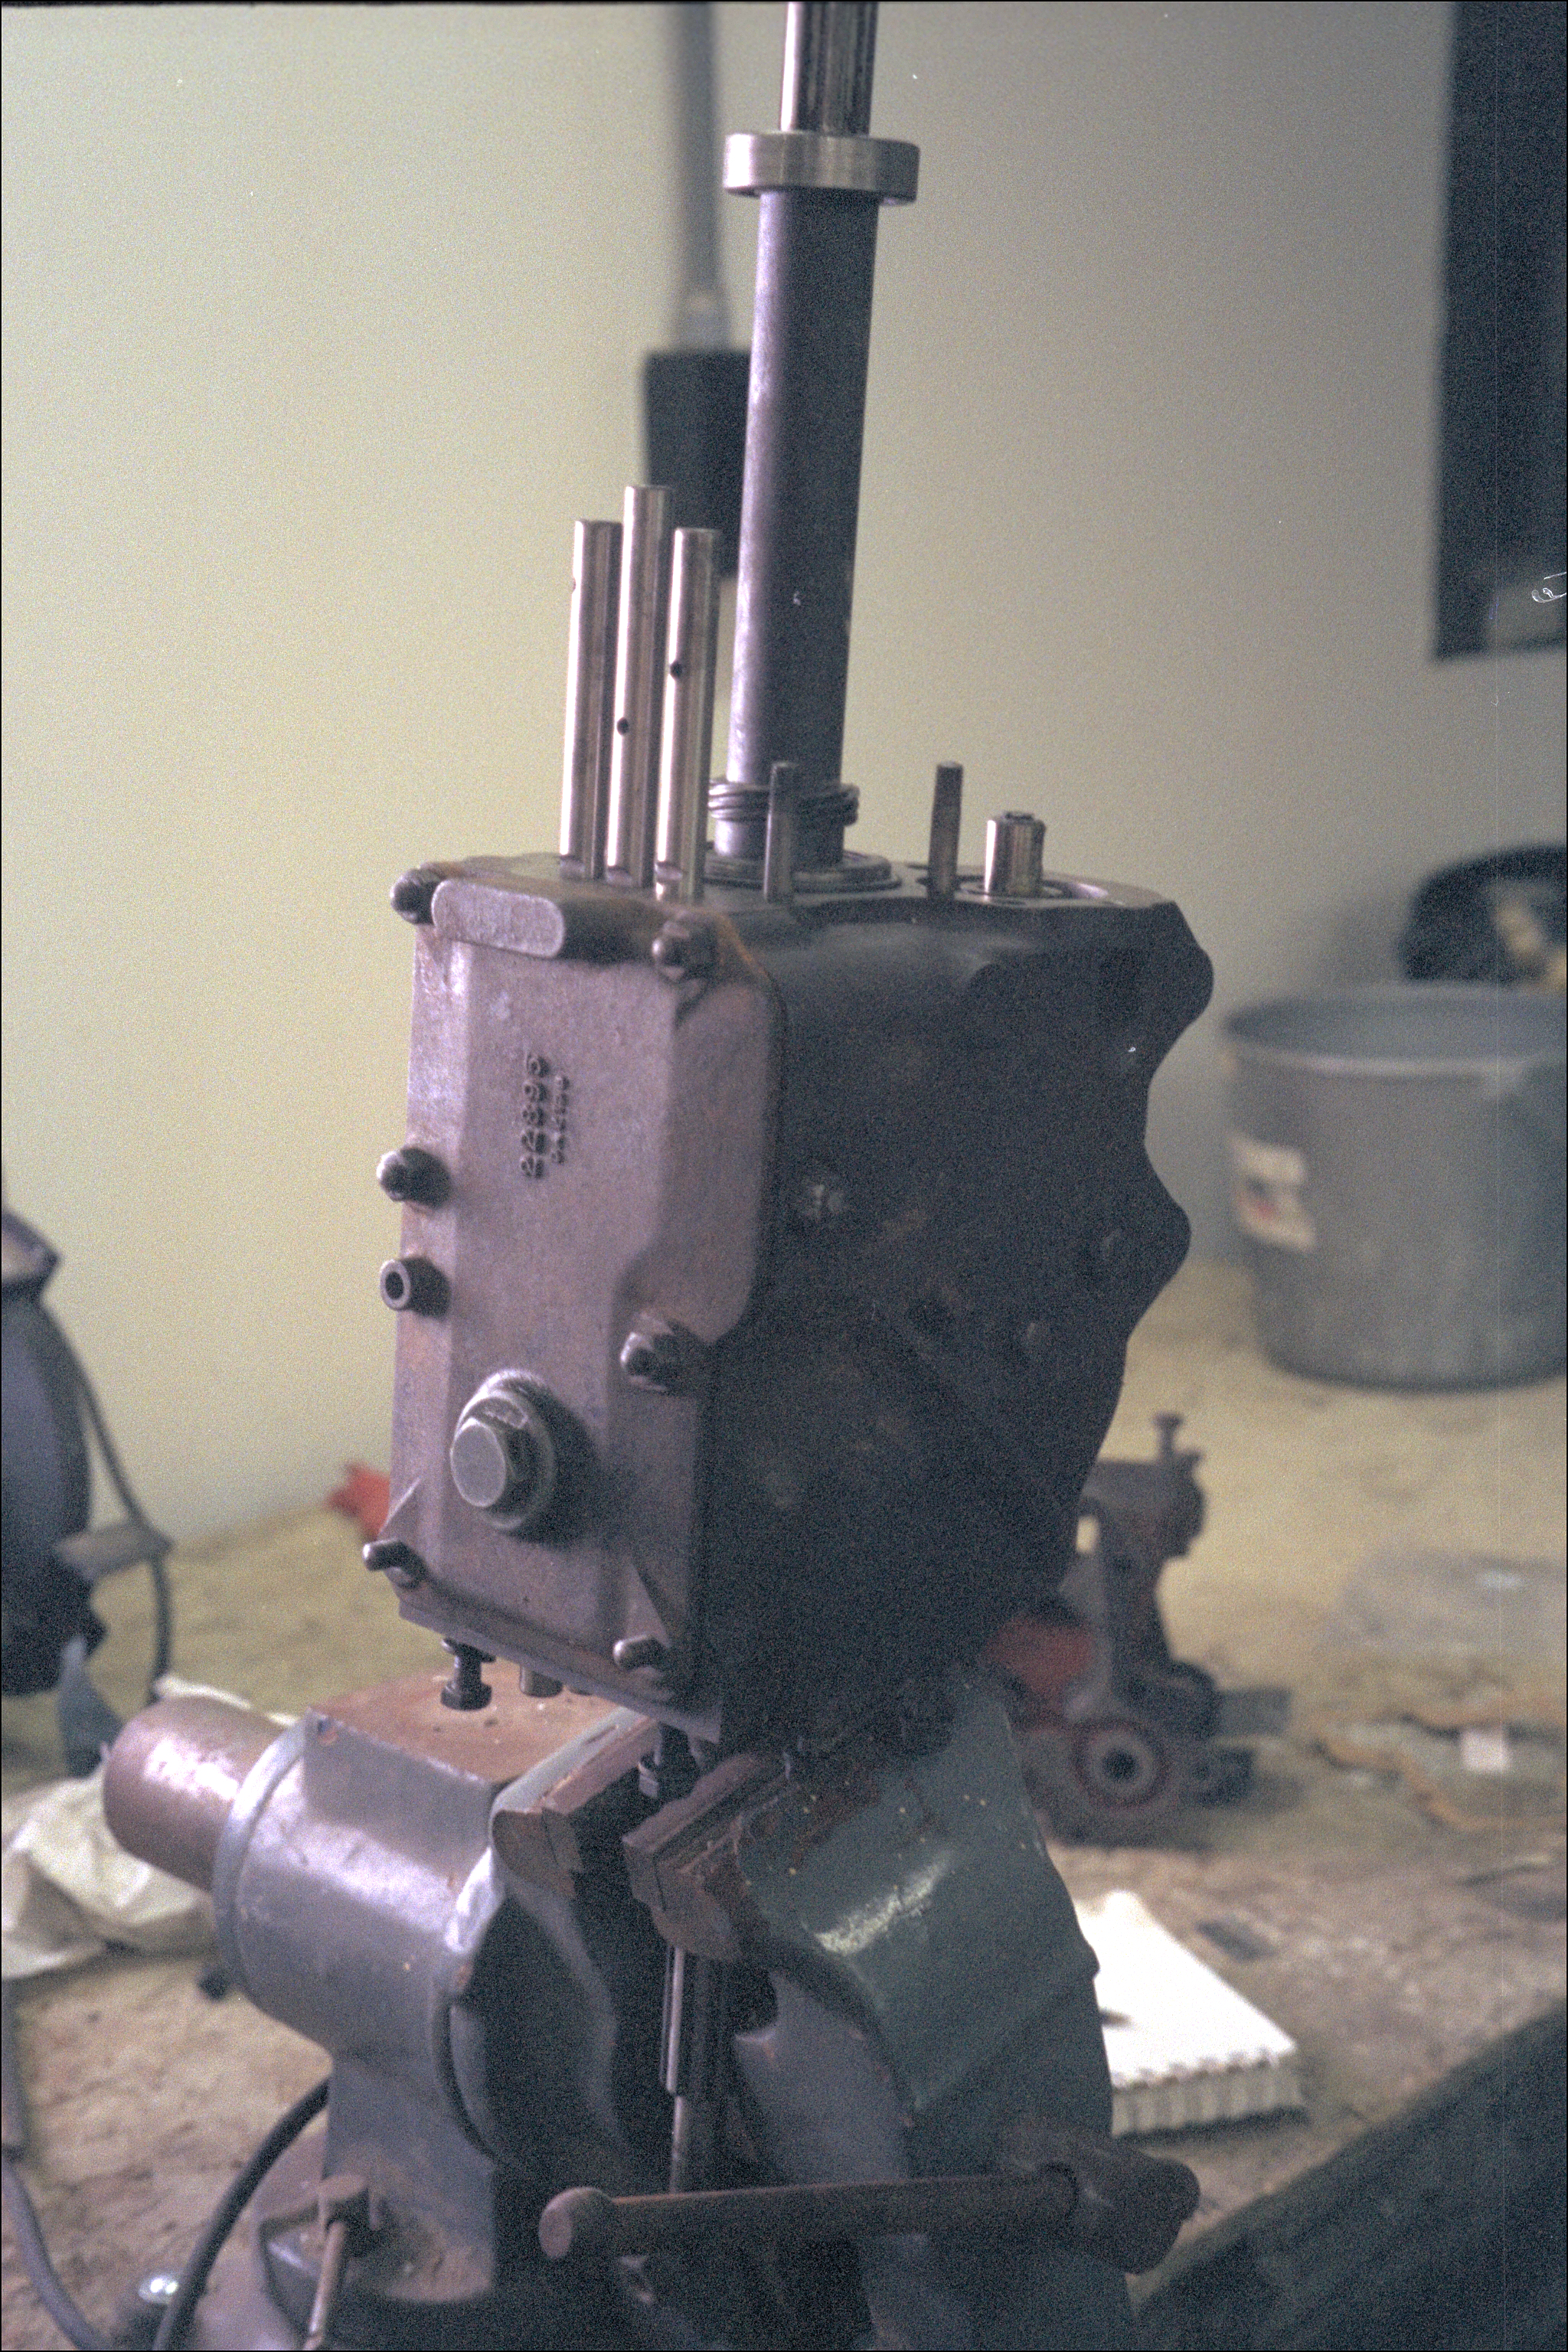 Transmission held in a vise